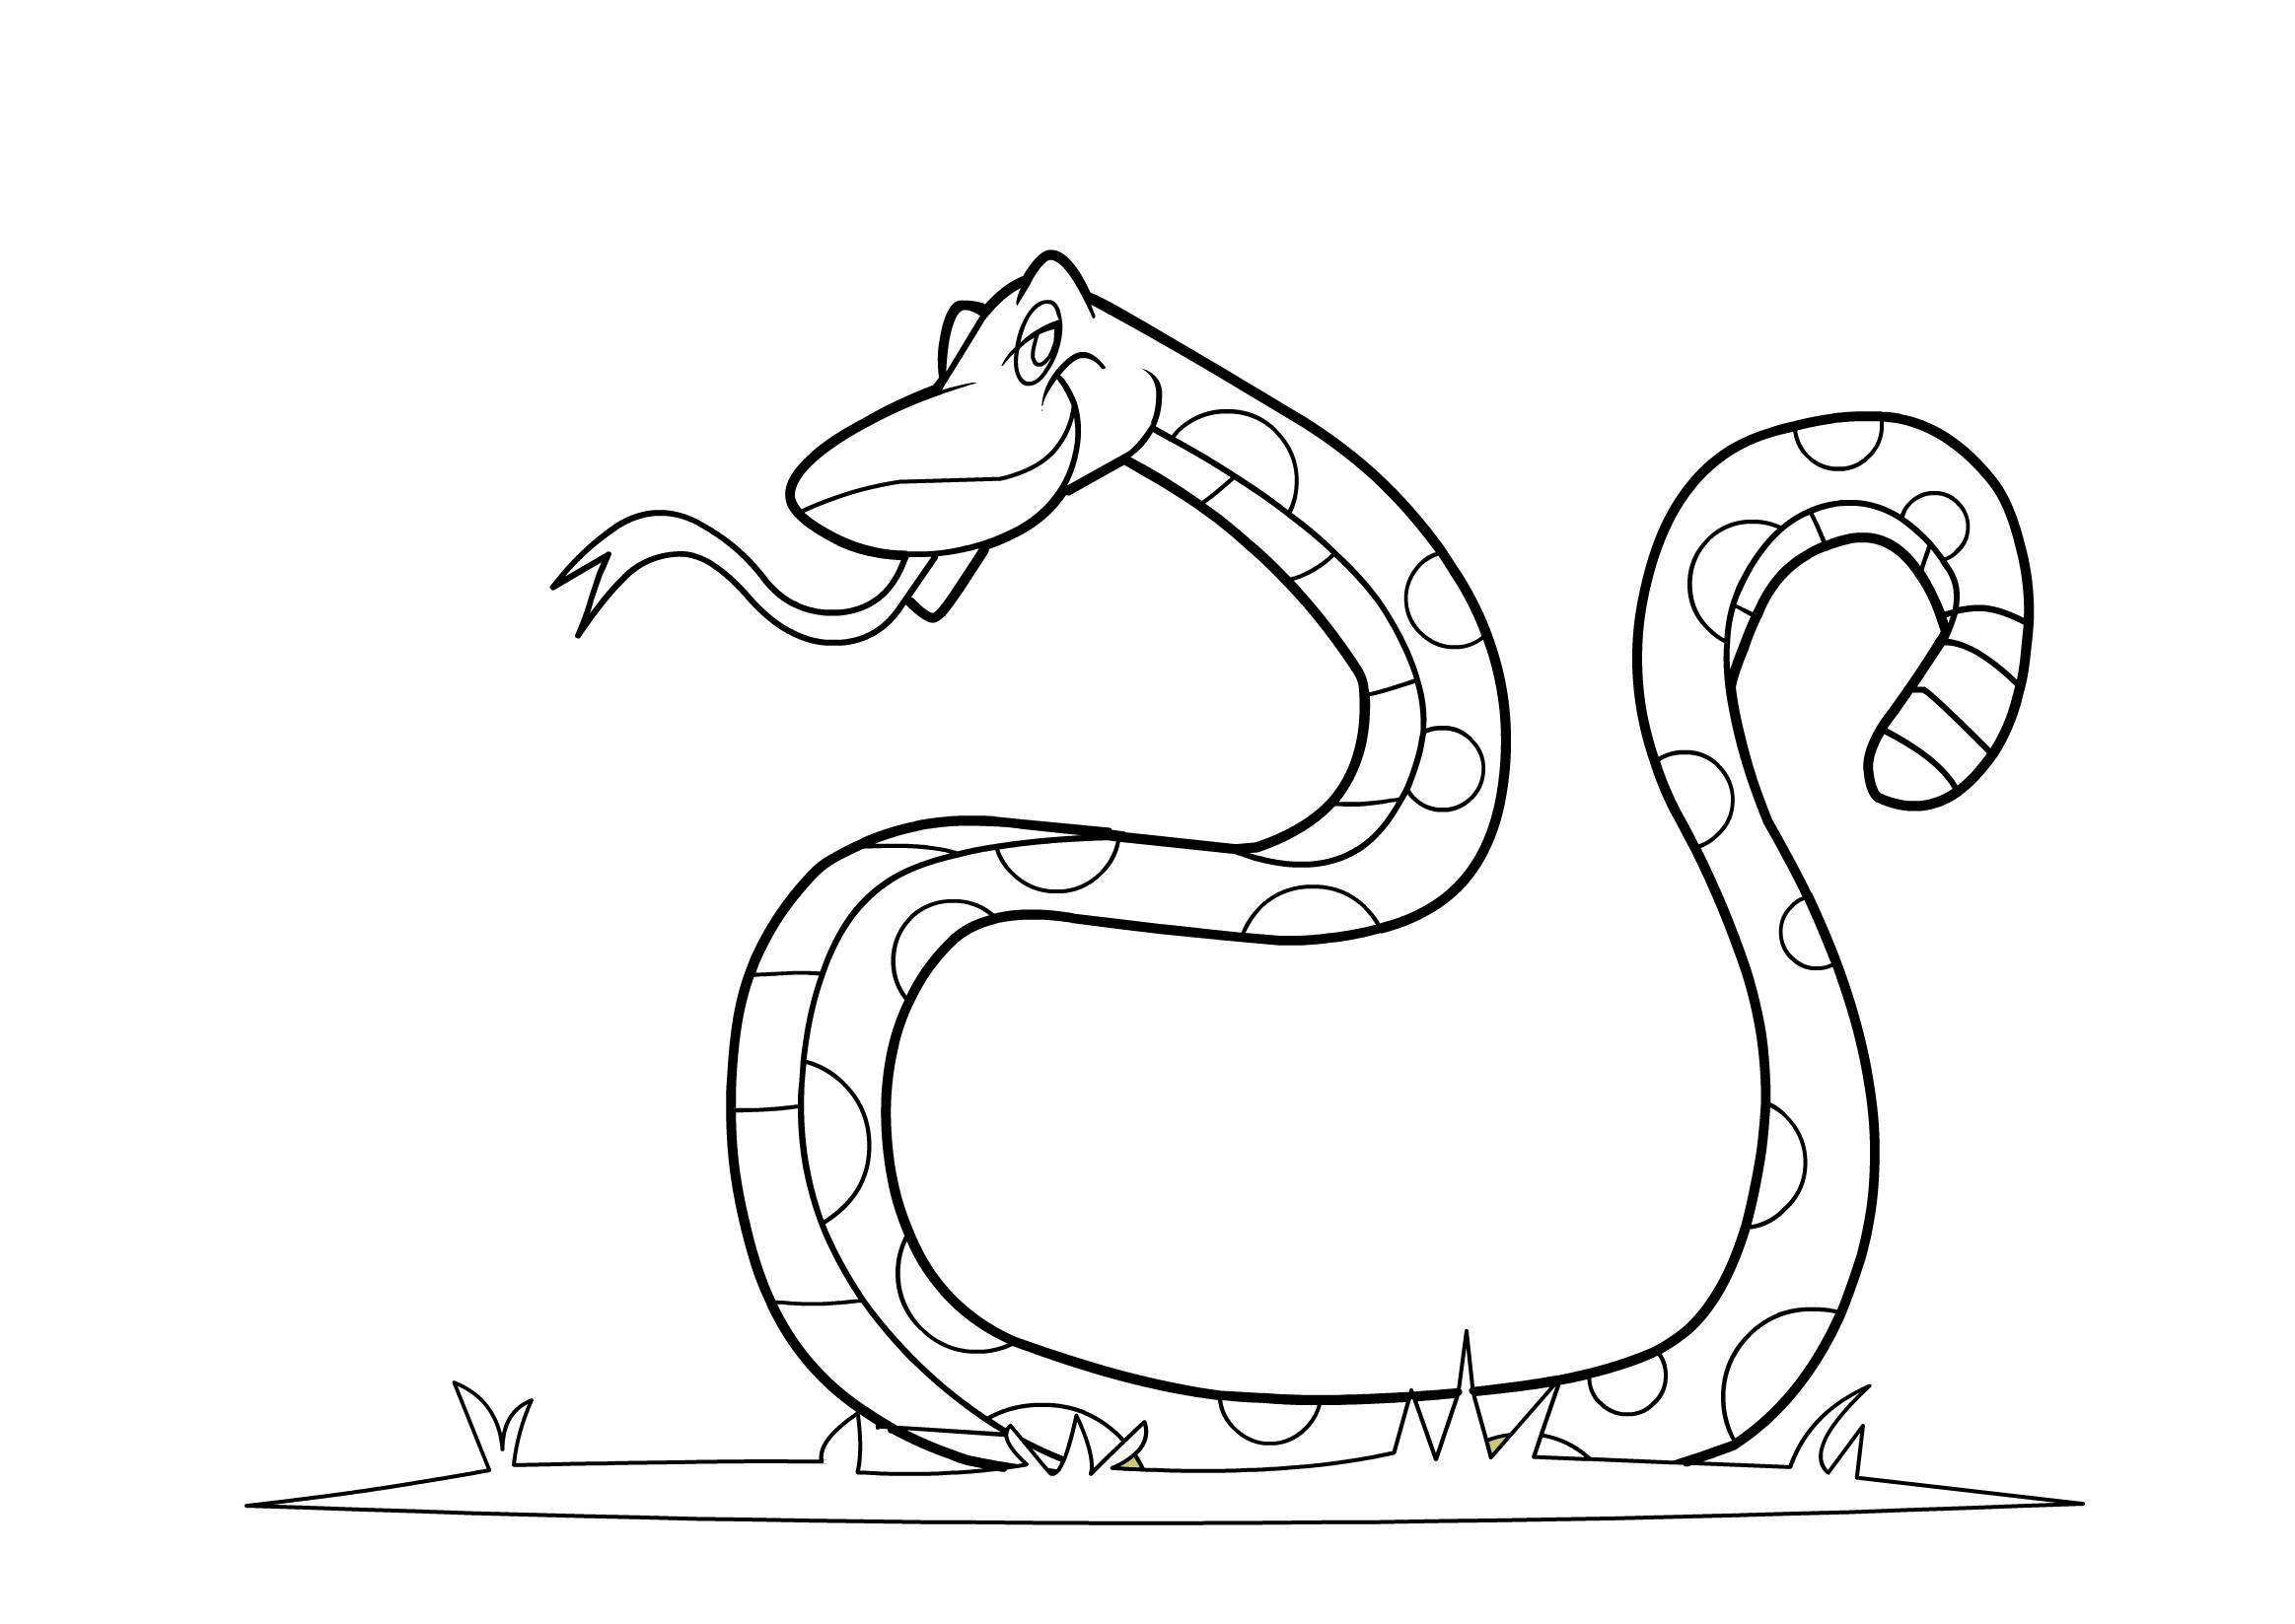 snake colouring pictures to print free printable snake coloring pages for kids print to colouring snake pictures